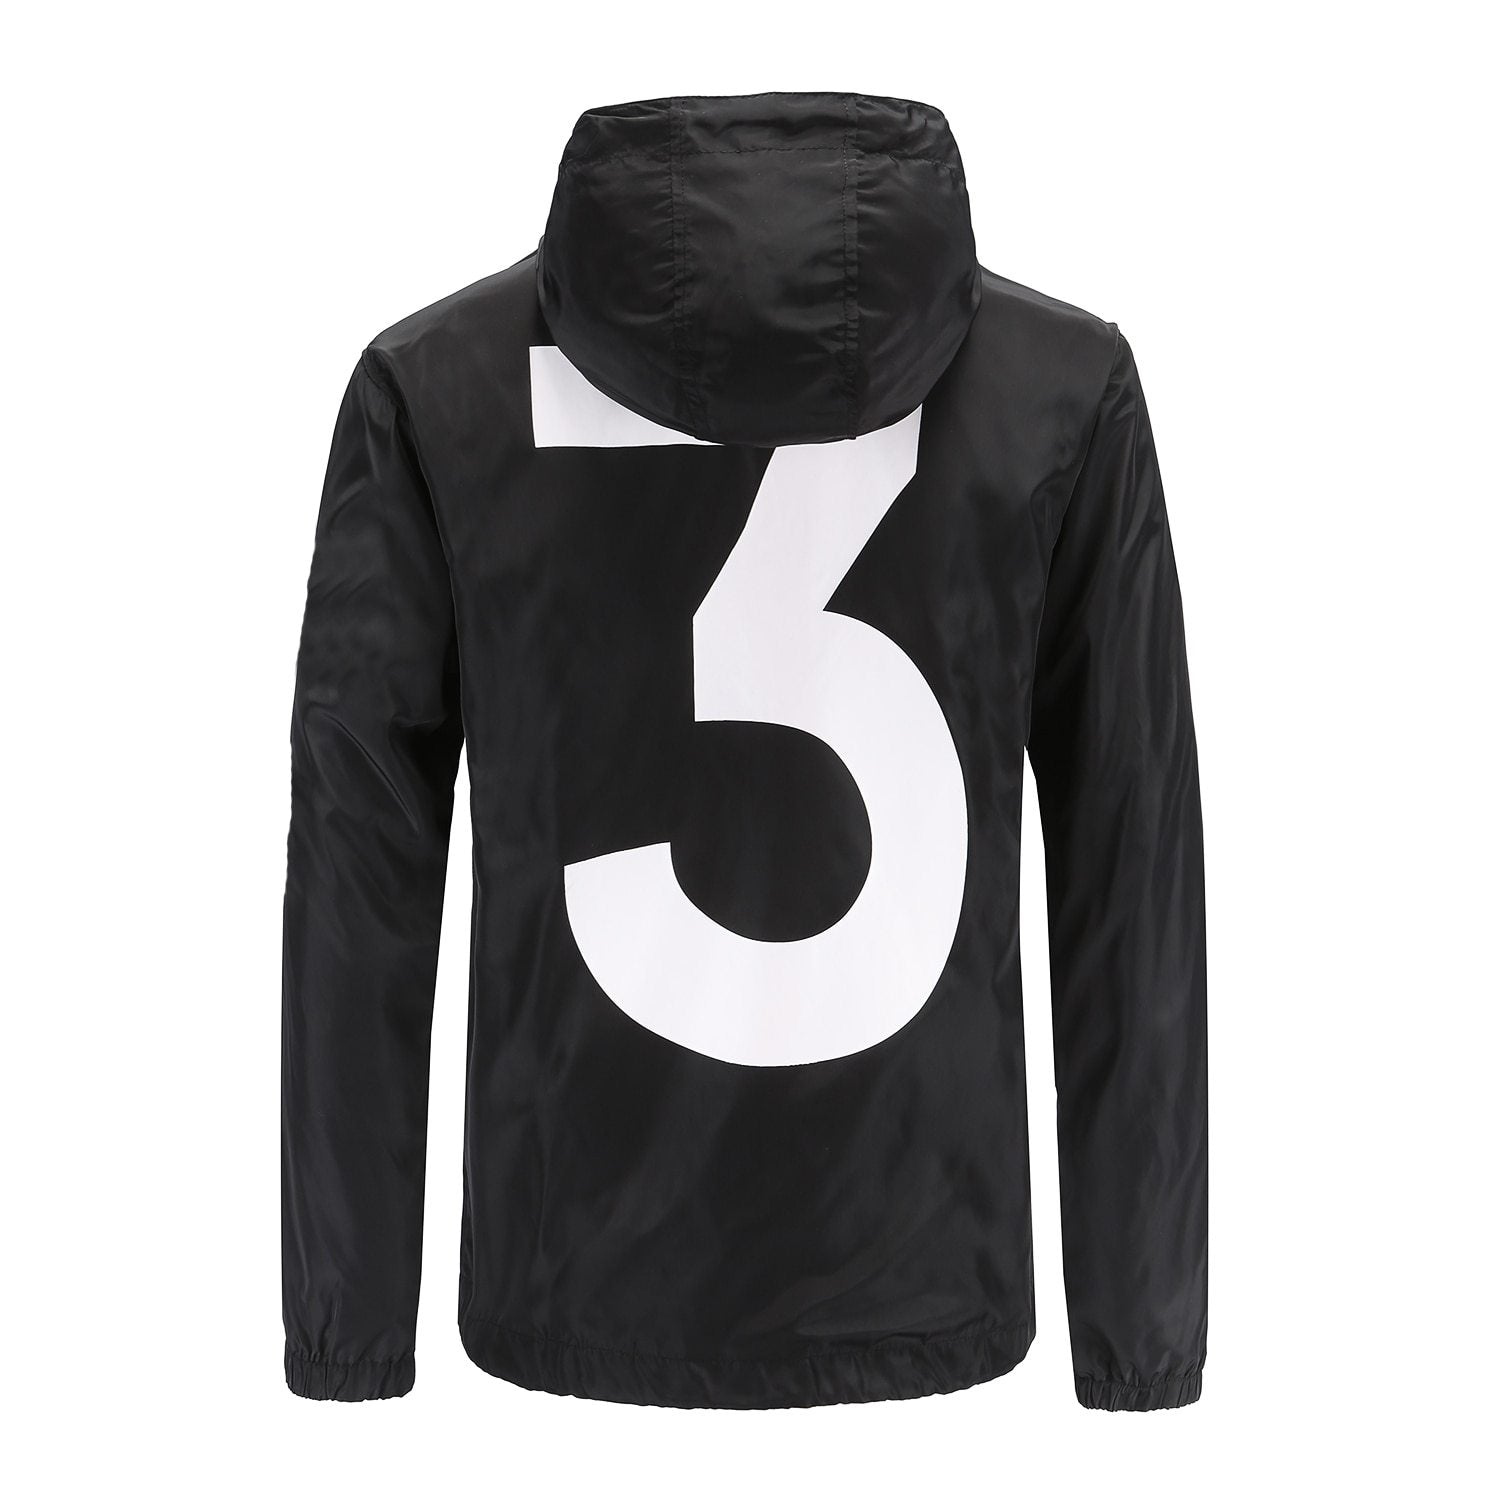 BLACK WHITE fashion Windbreaker No.3 Spring Summer Jacket Men Women Brand Fashionliilgal-liilgal